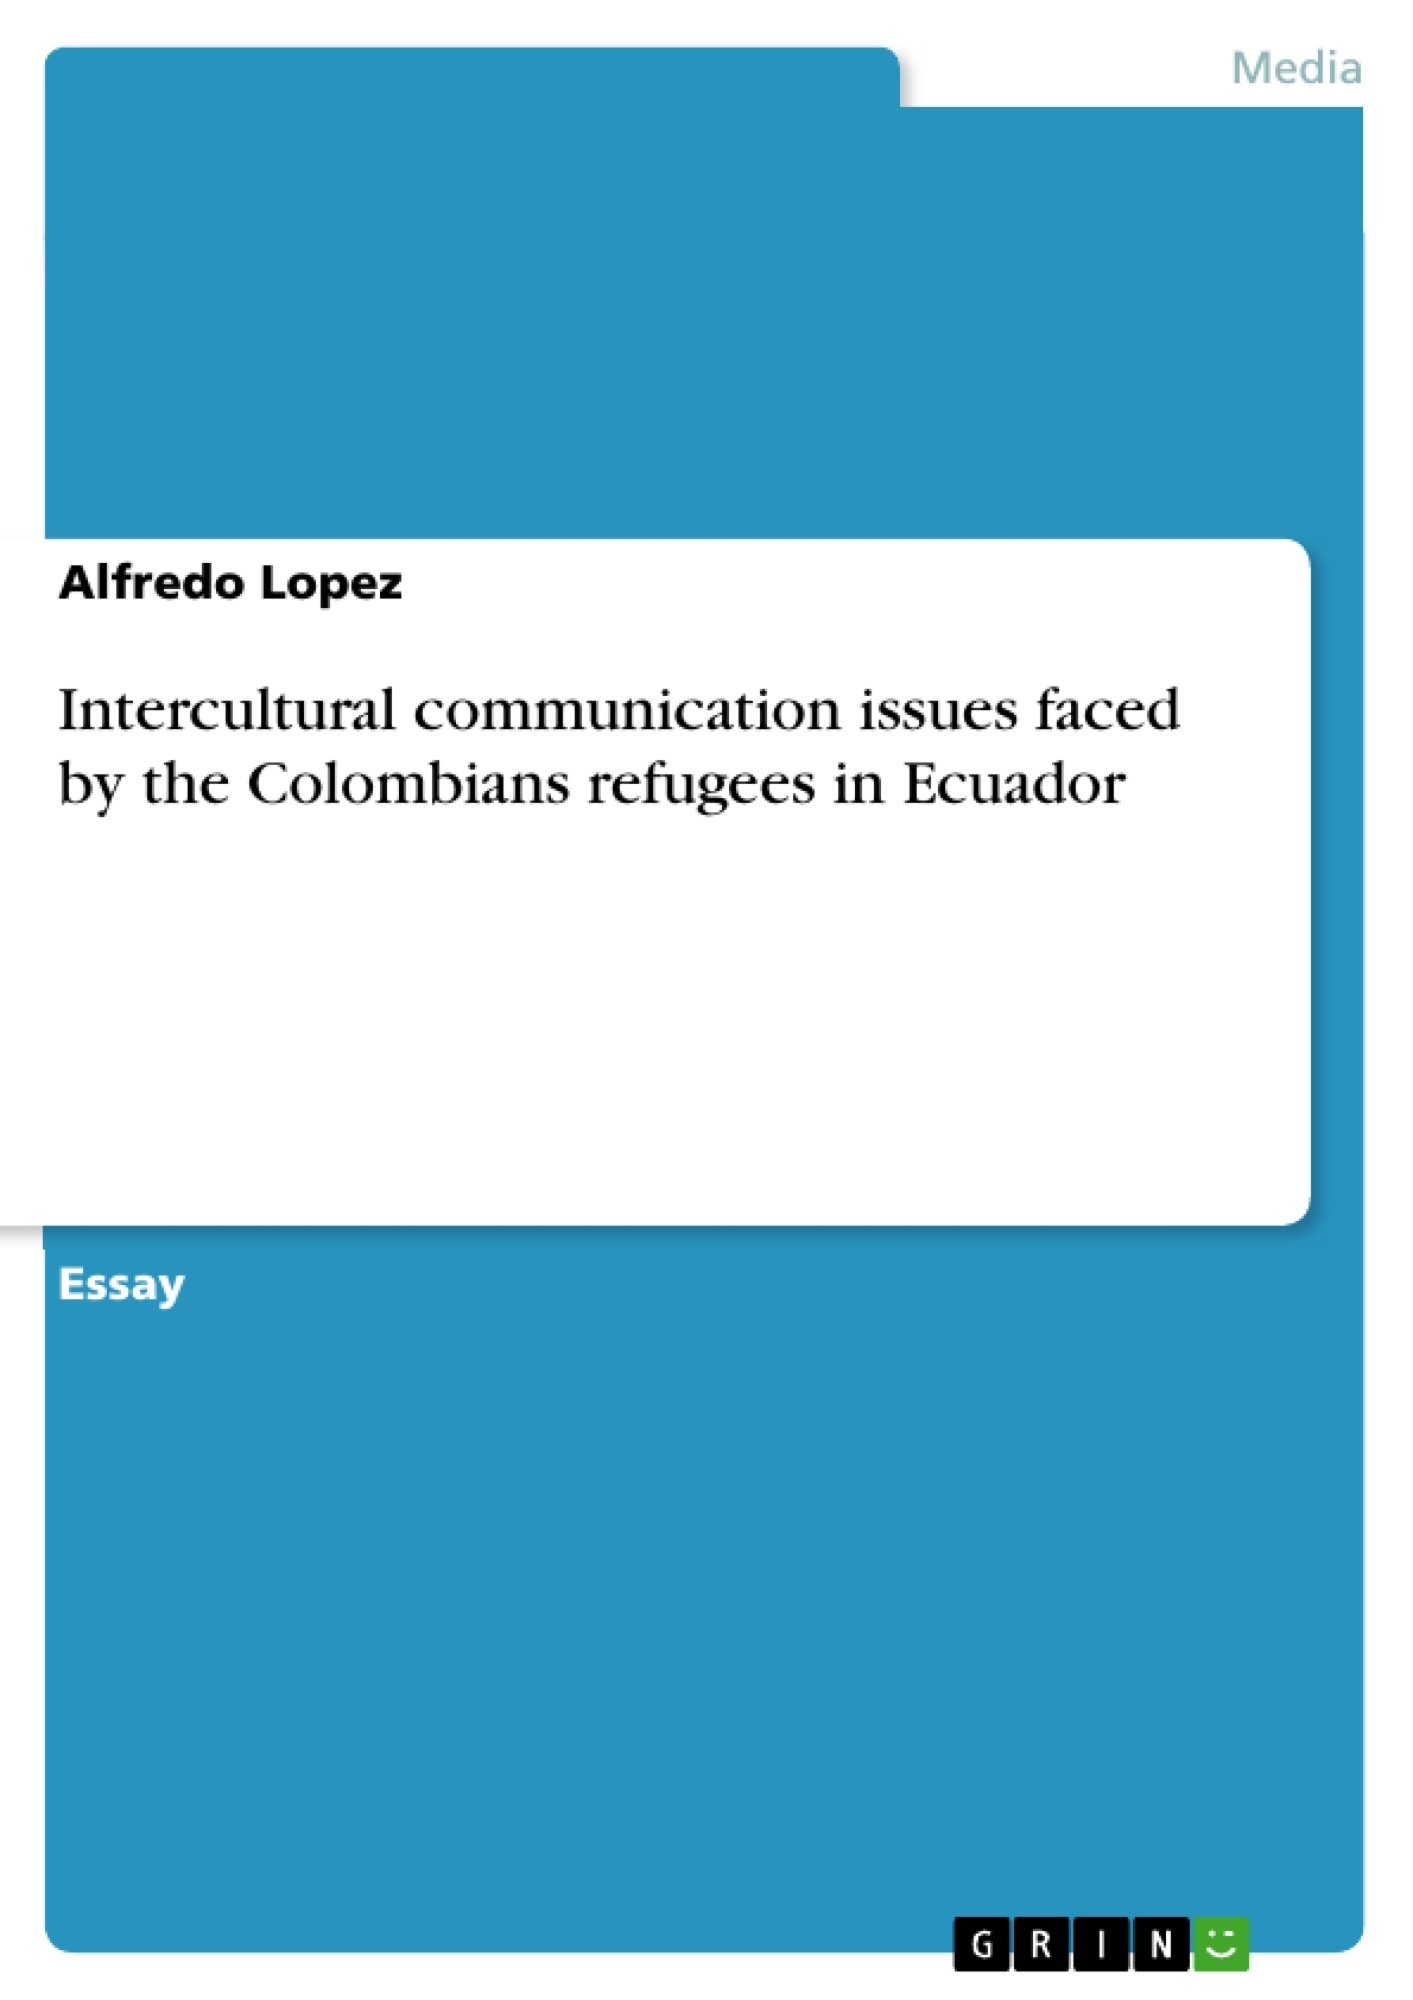 Title: Intercultural communication issues faced by the Colombians refugees in Ecuador